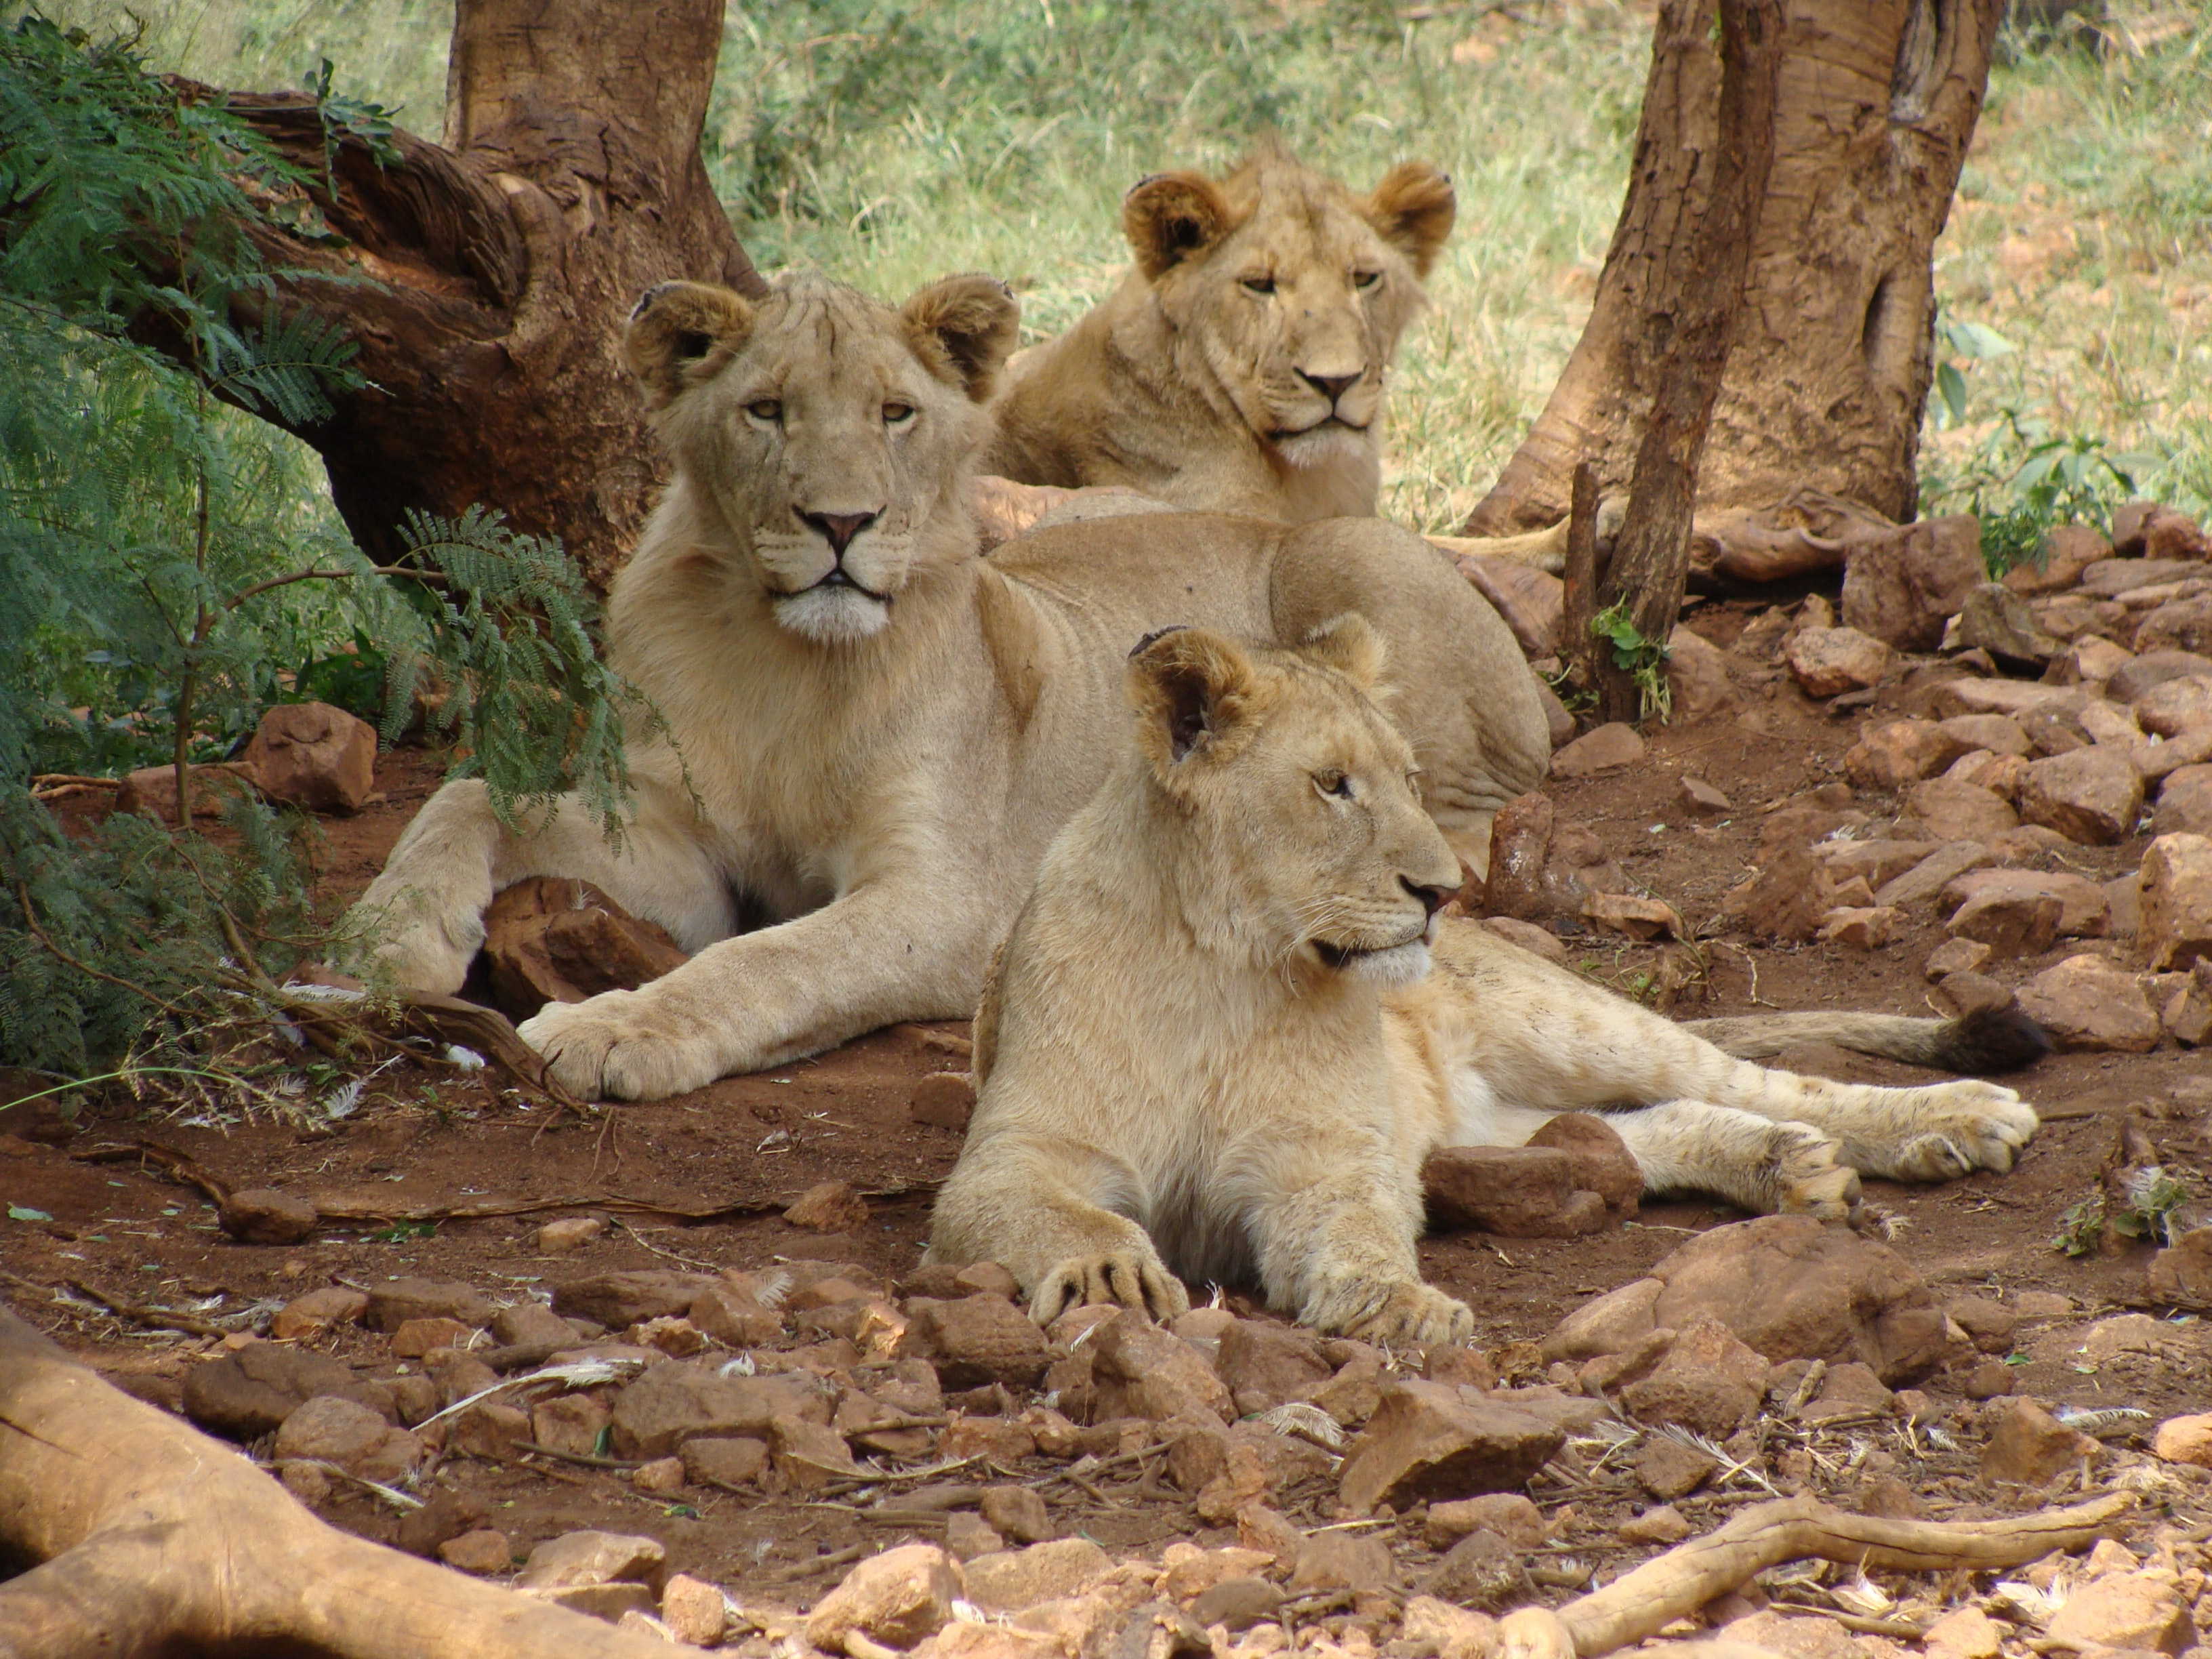 Pride of Lions, Animal photography, Mammal, Wildlife, Wild cats, HQ Photo